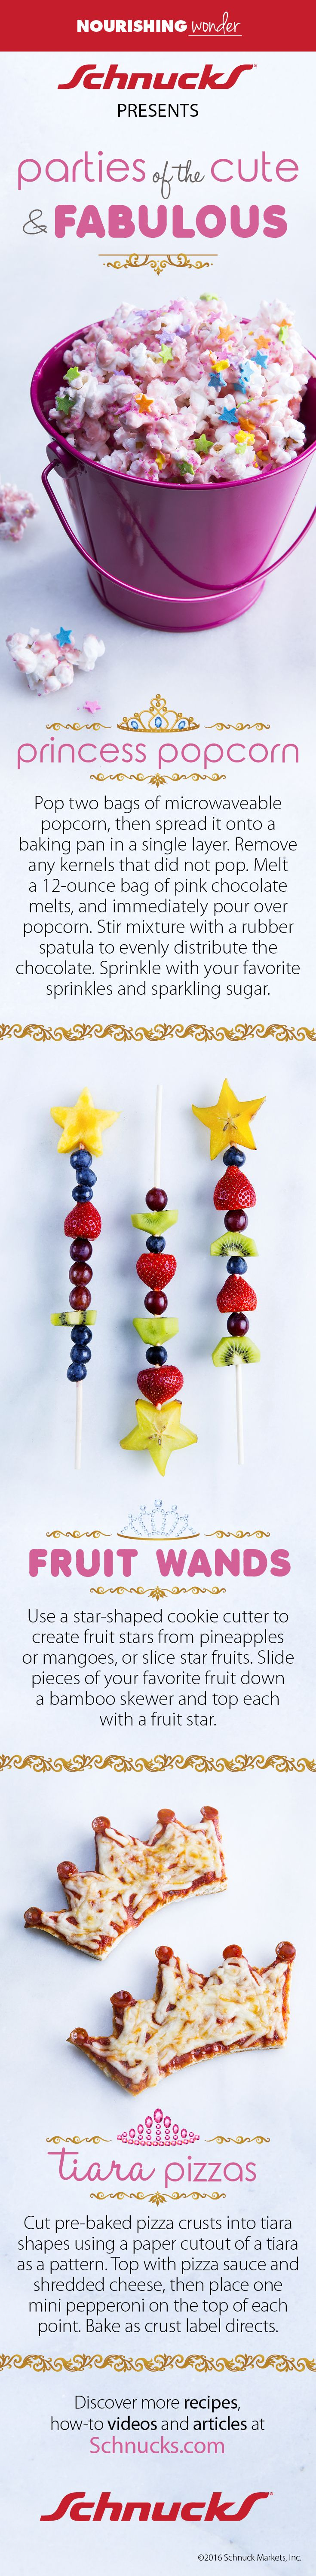 Pop star fruit - From Princess Popcorn To Fruit Wands And Tiara Pizzas These